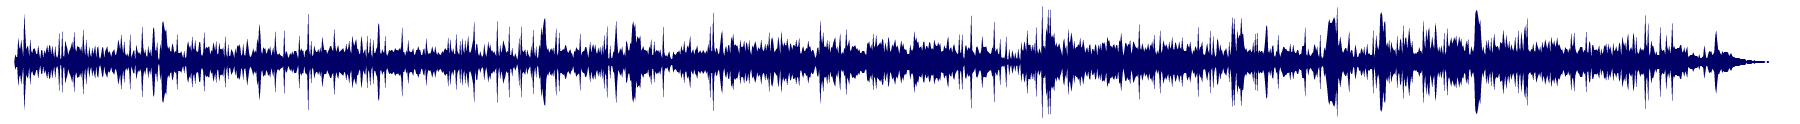 waveform of track #78058